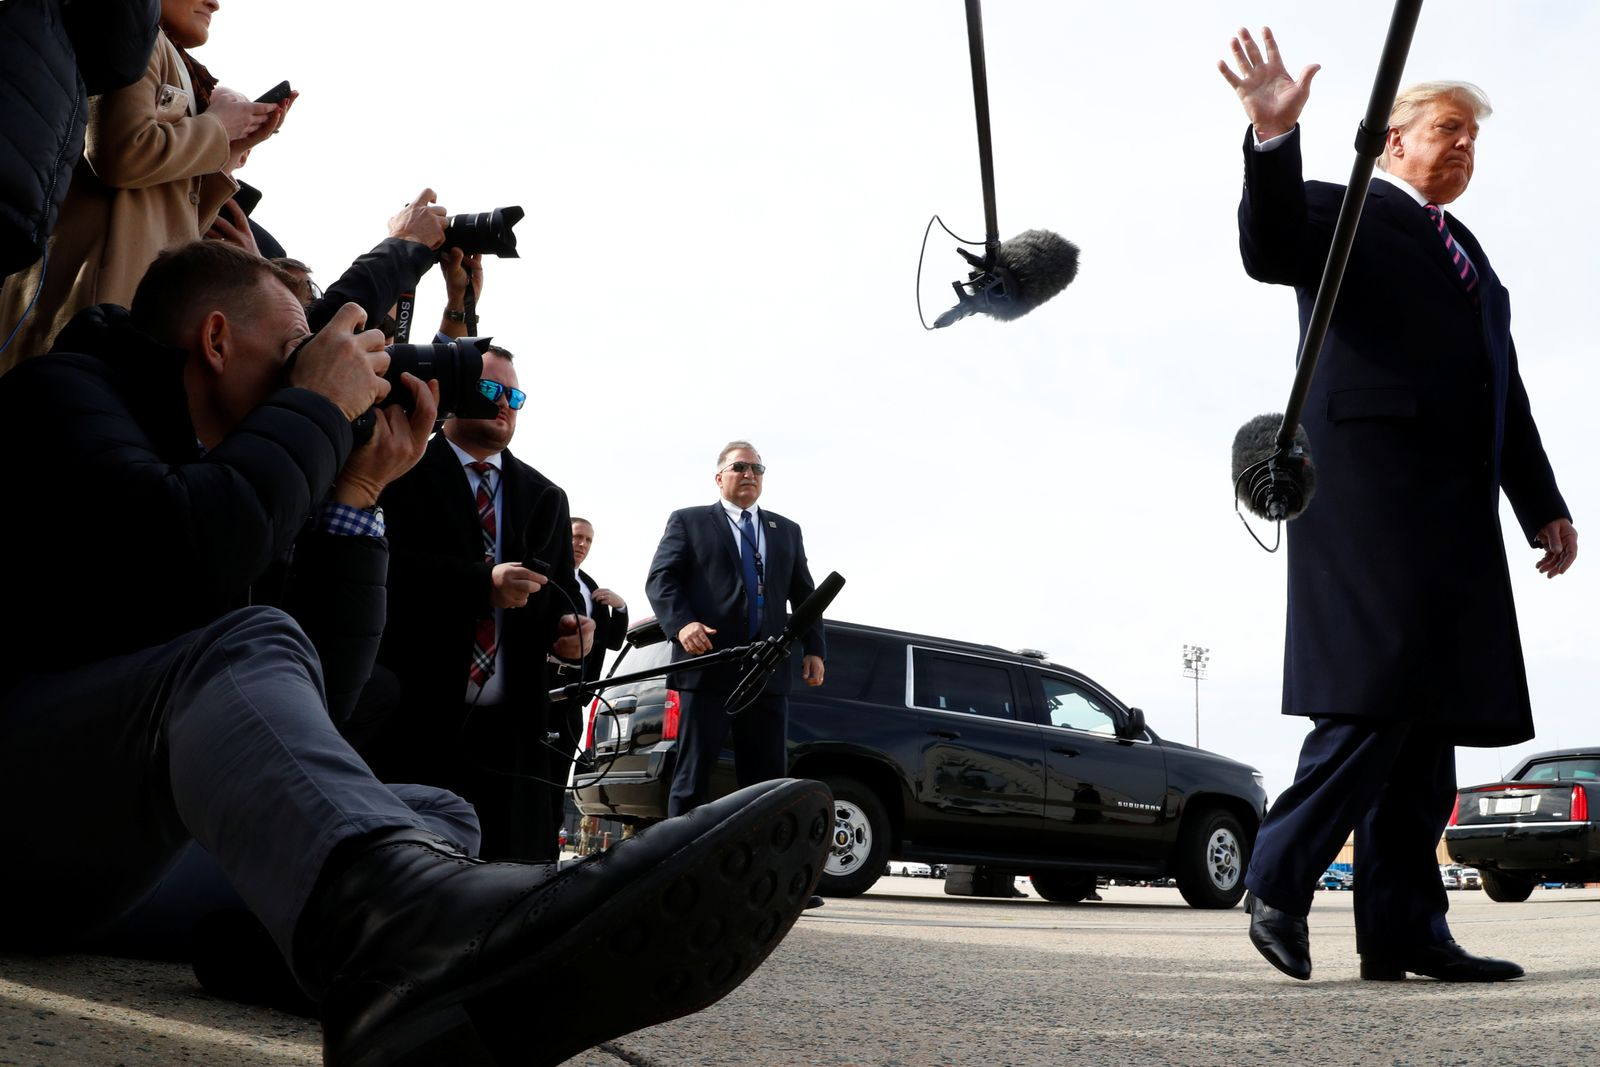 U.S. President Donald Trump speaks to members of the news media before boarding Air Force One at Joint Base Andrews in Maryland